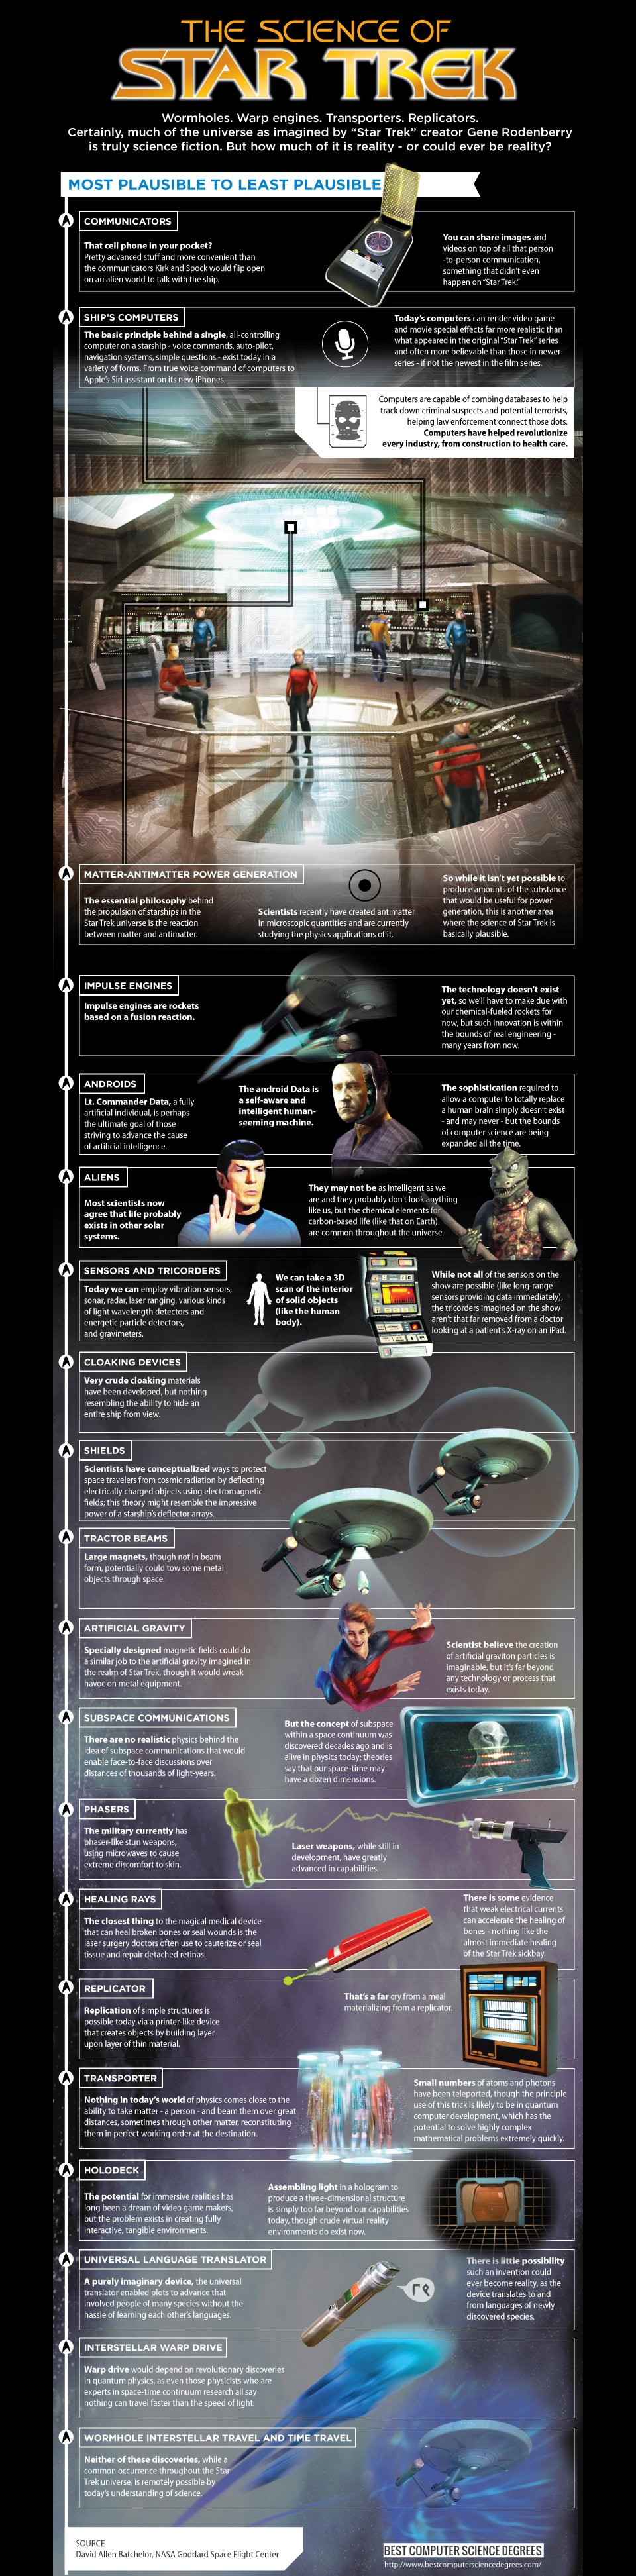 The Science of Star Trek: Antimatter to Wormholes